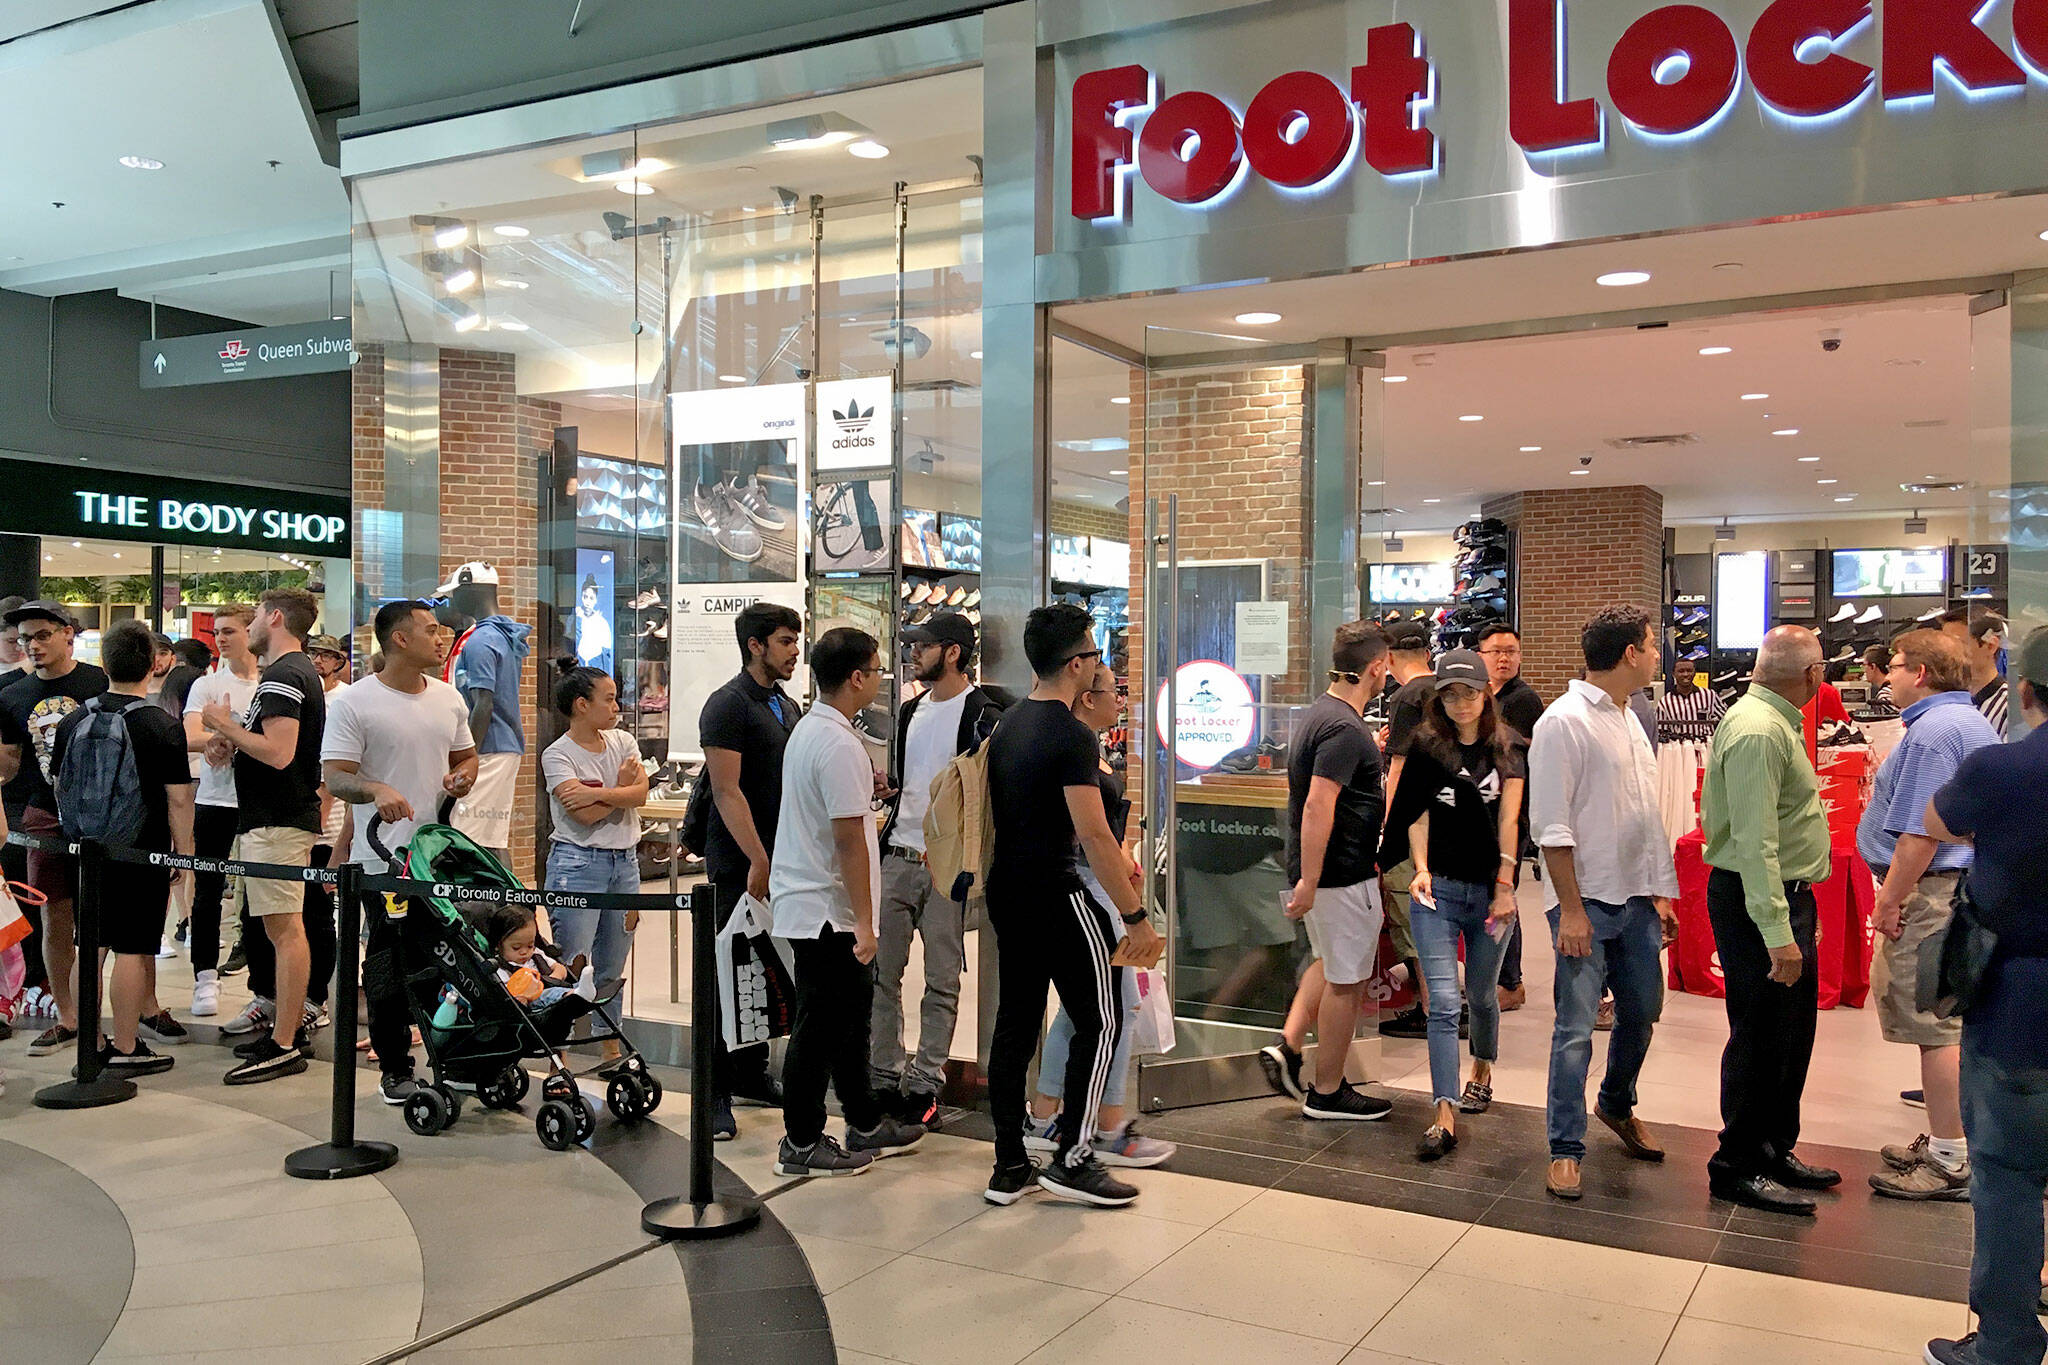 Hundreds just lined up in Toronto for chance to buy Yeezy shoes 6d9aecc22